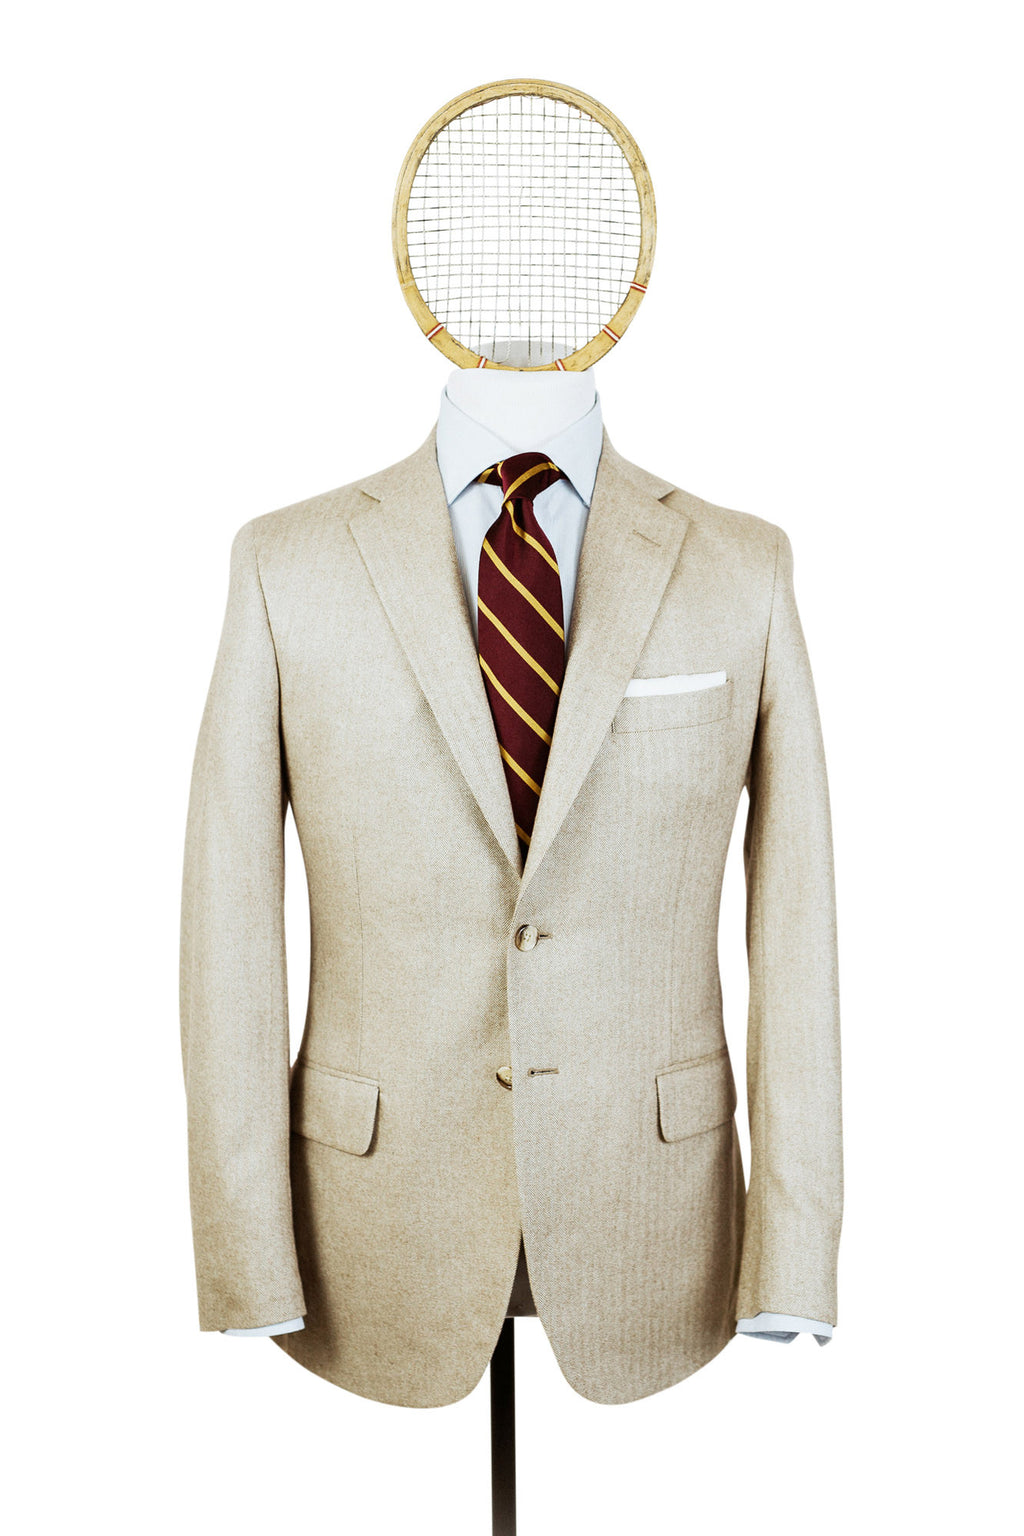 SHAW No. 1: Tan Herringbone in Cashmere-Silk